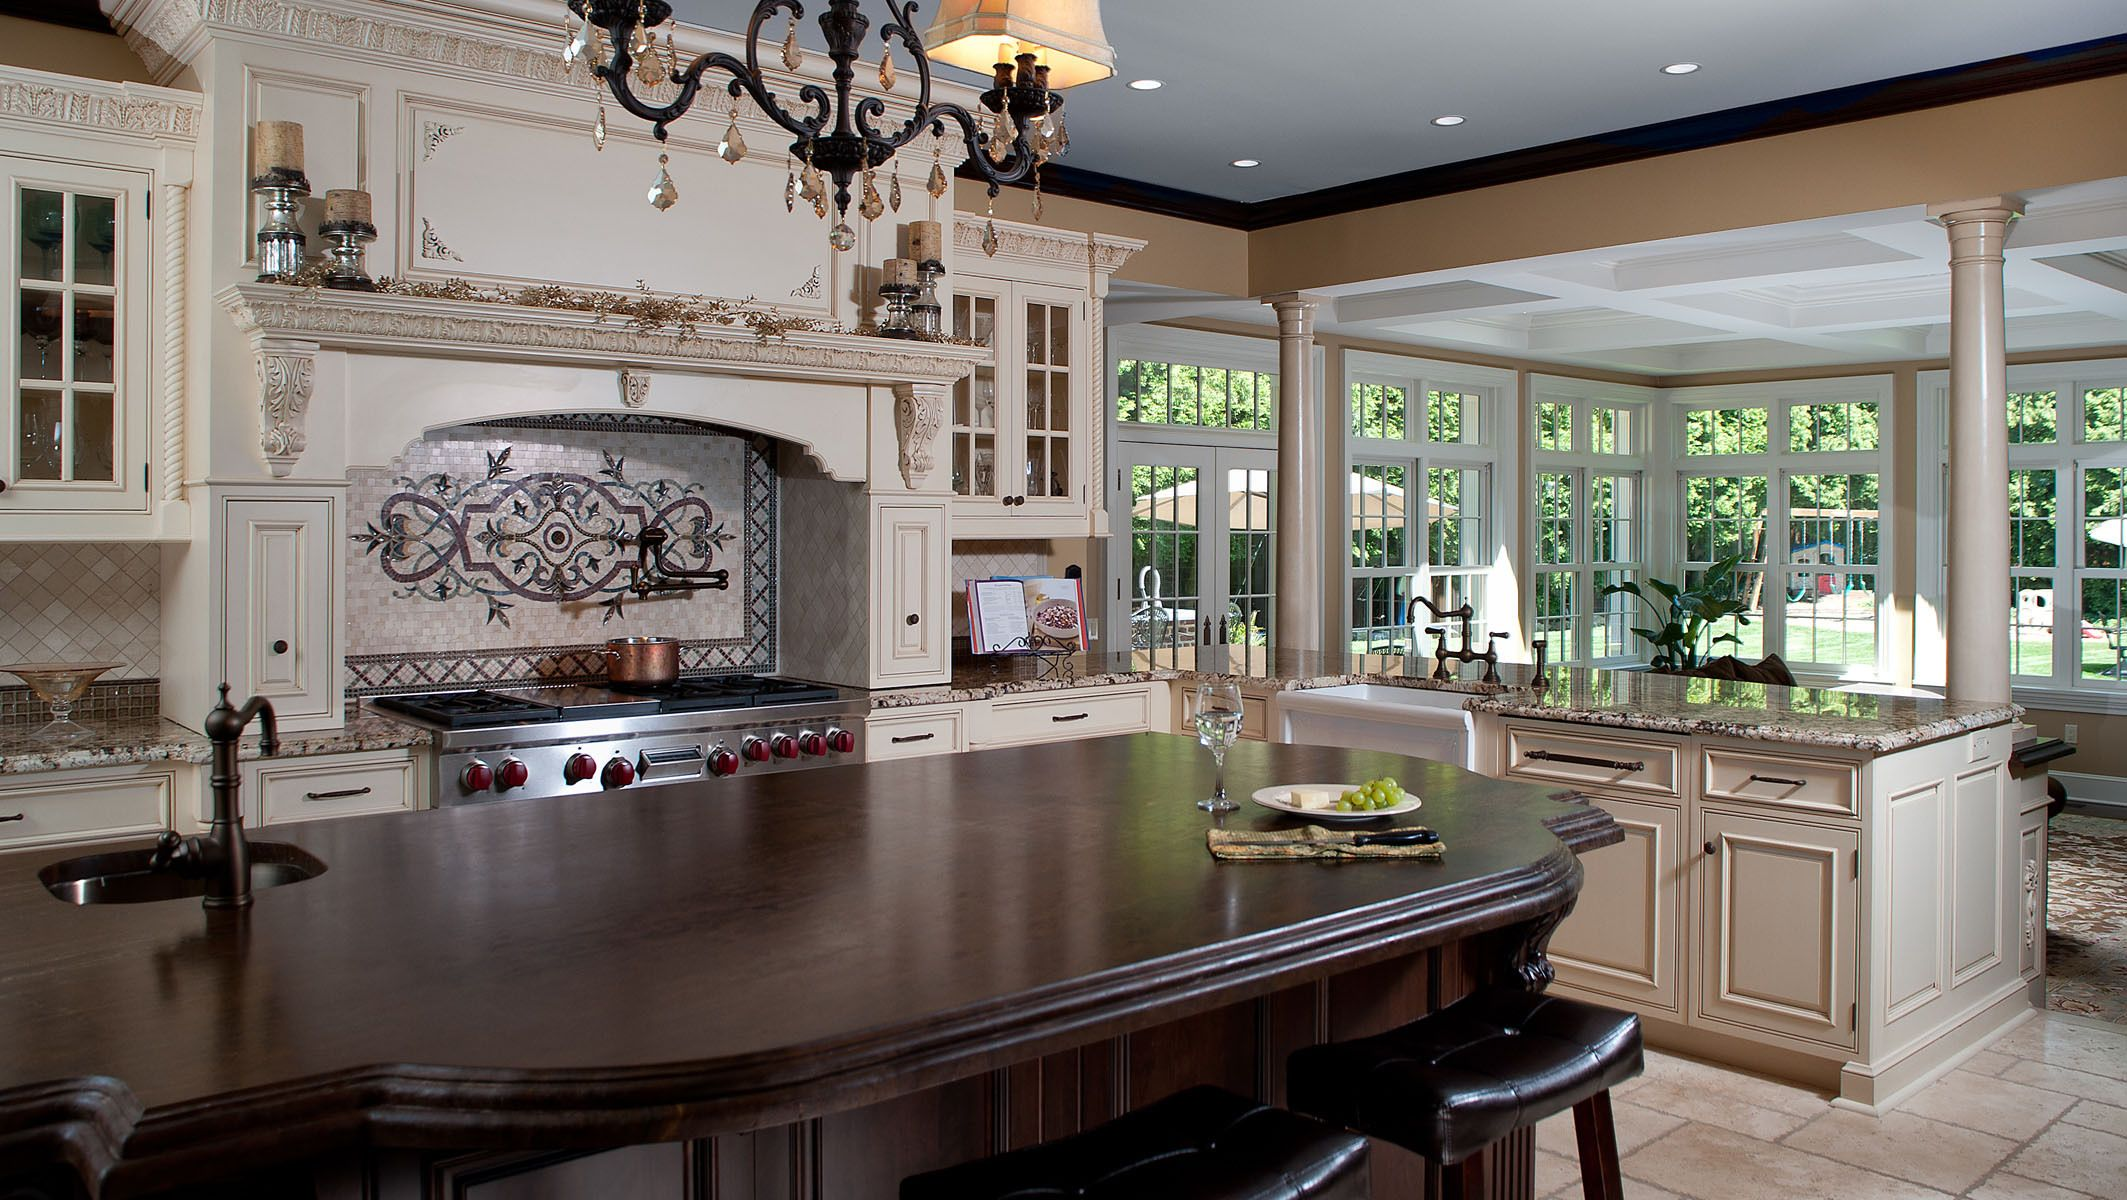 Sunroom Designs For A Colonial Home | Classic Scarsdale Brick Colonial